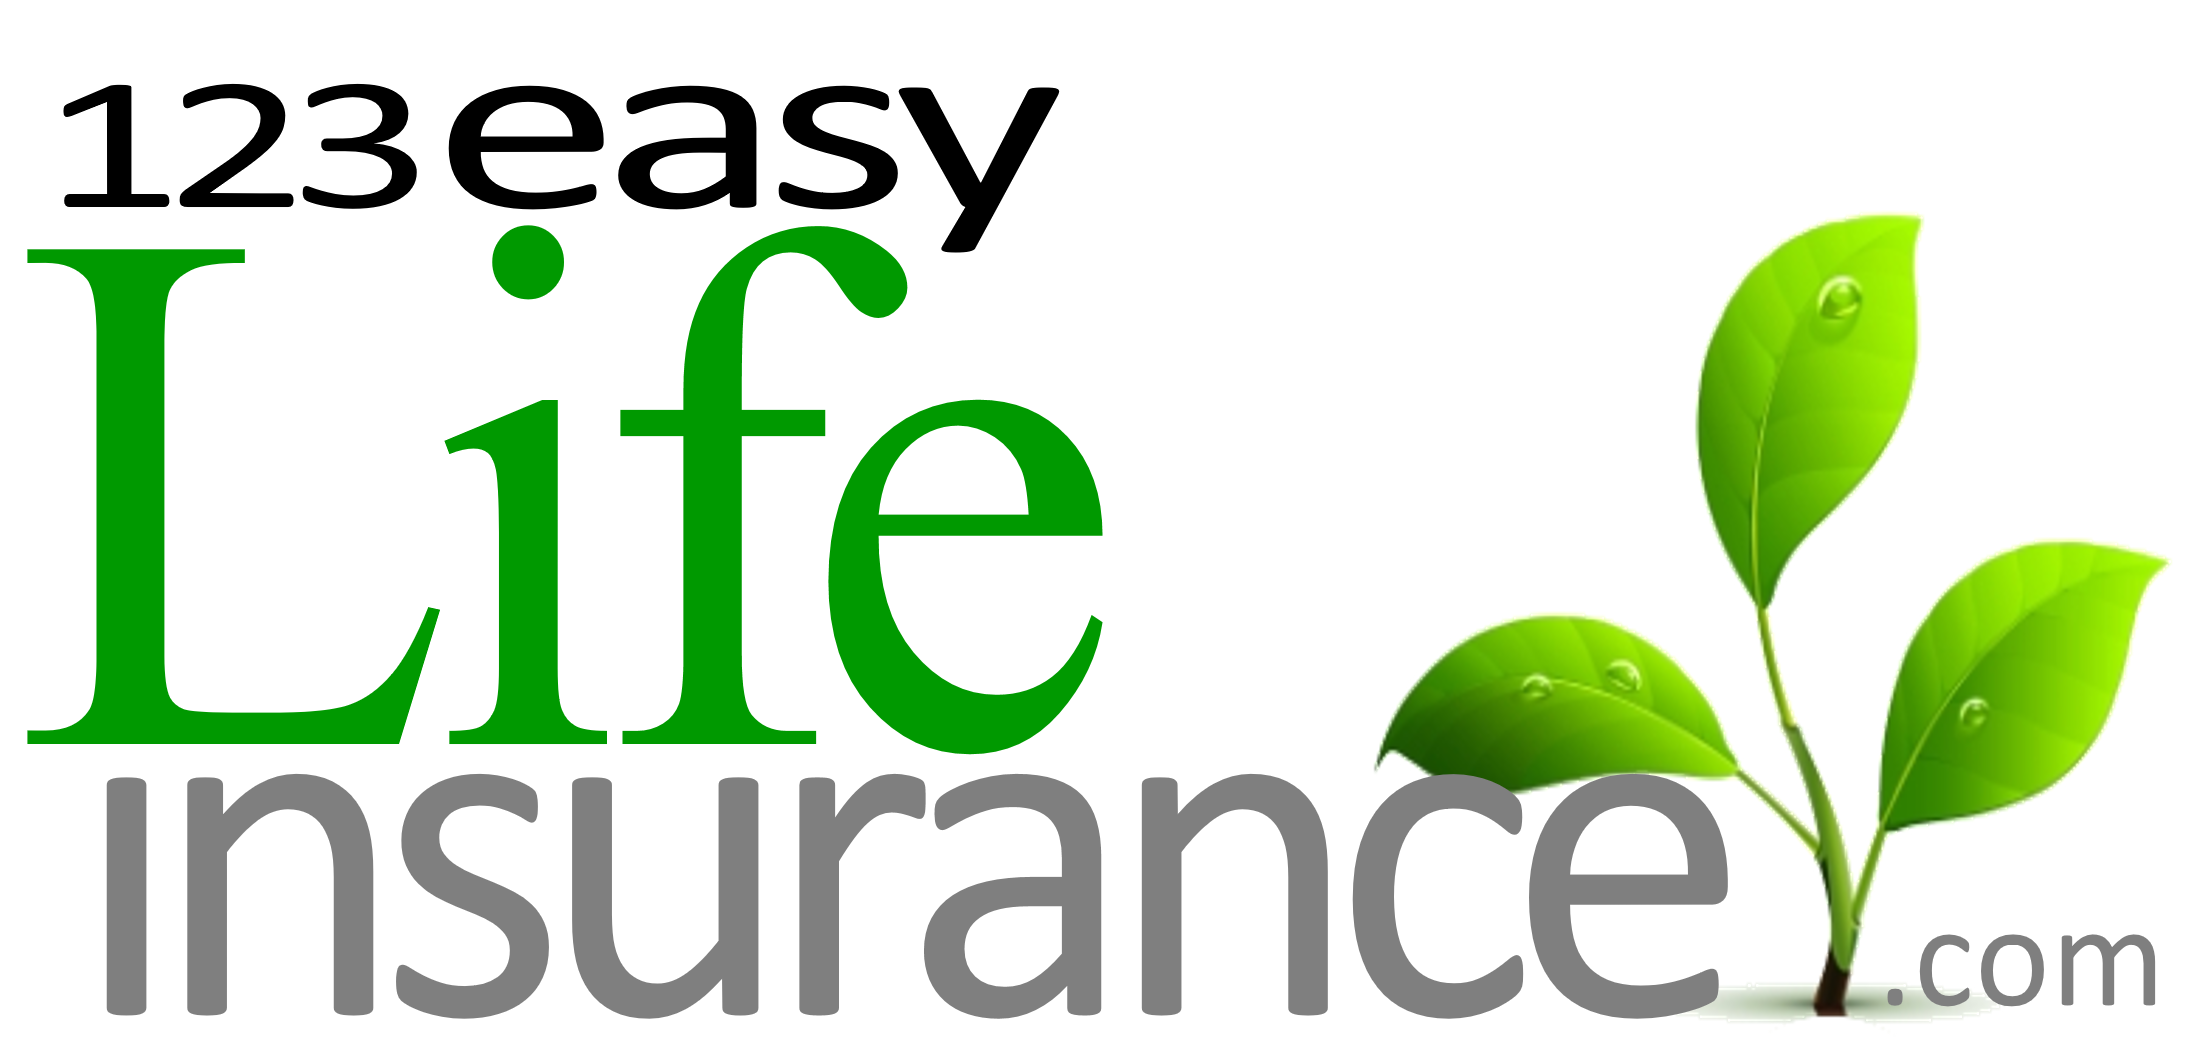 Select Quote Term Life 123Easylife  Termlife Insurance For Those That Need $1M Or More